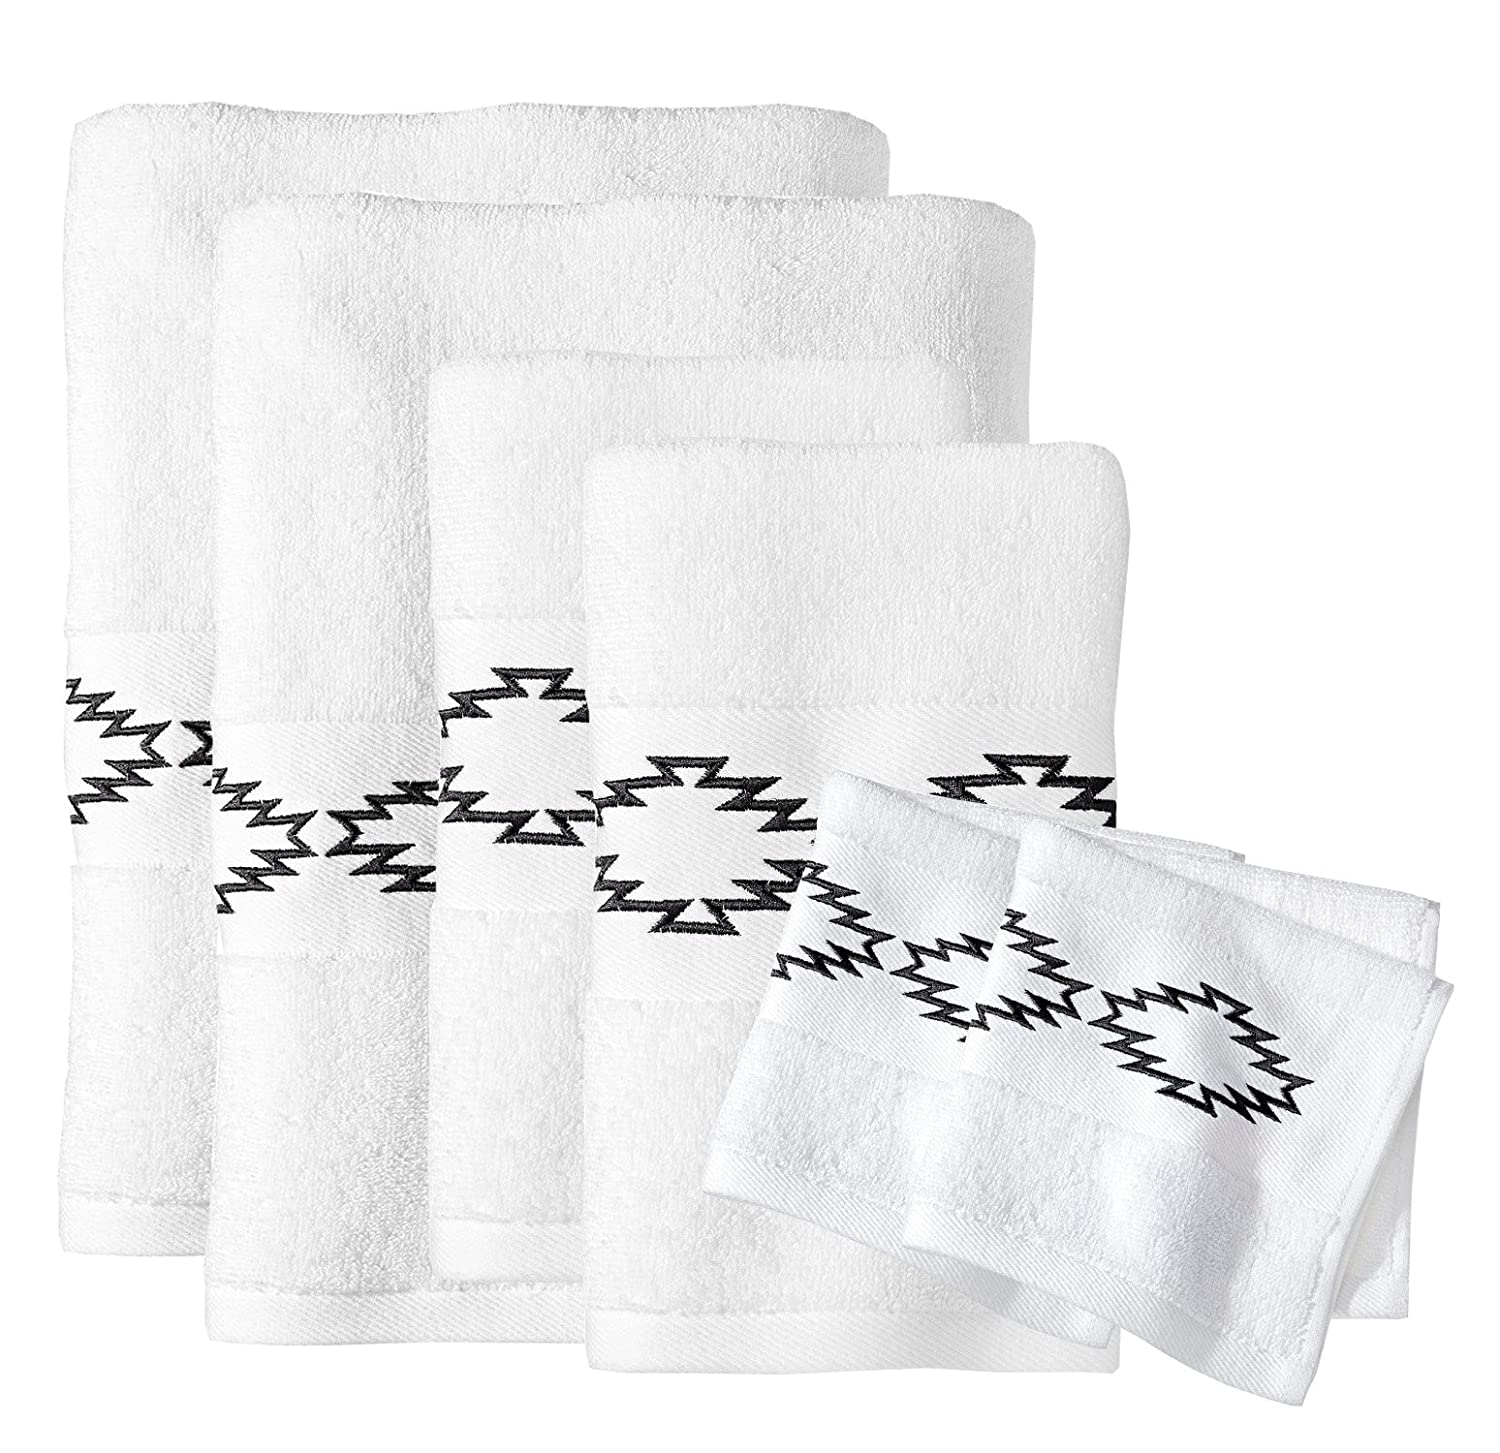 Sabrina Soto® Boutique Luxury 6 Piece Bath Towel,Hand Towel and Washcloth Set (Pink)